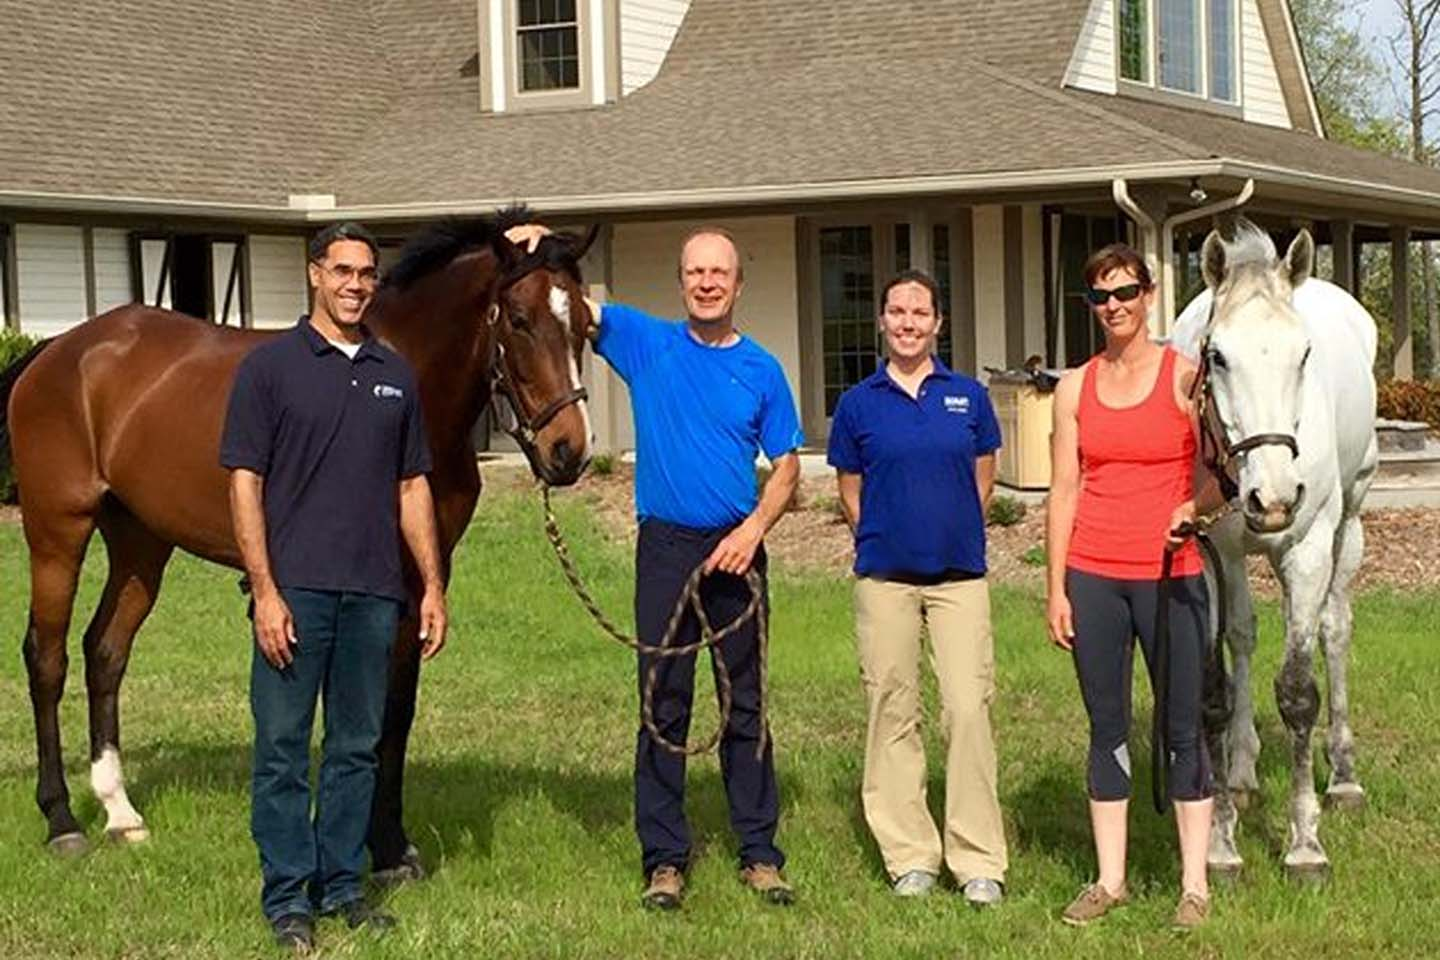 Equine physical therapy - Peter Barry And Team Olympic And 4 Event Rider Client Of Results Equine Therapy